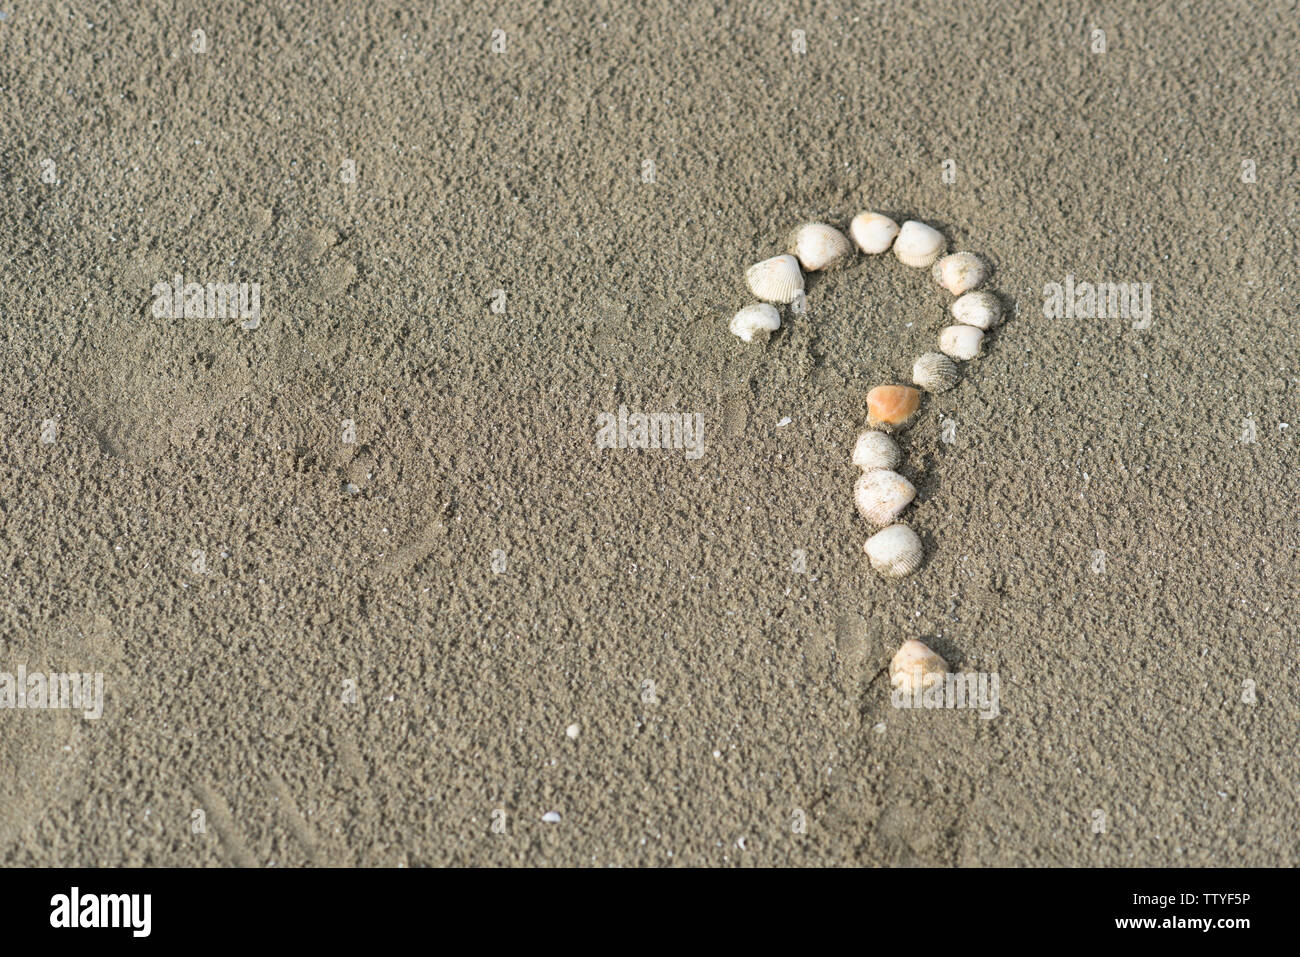 sea shells forming a question mark on a sandy beach. Concept of faq, travel tips and travel destinations - Stock Image